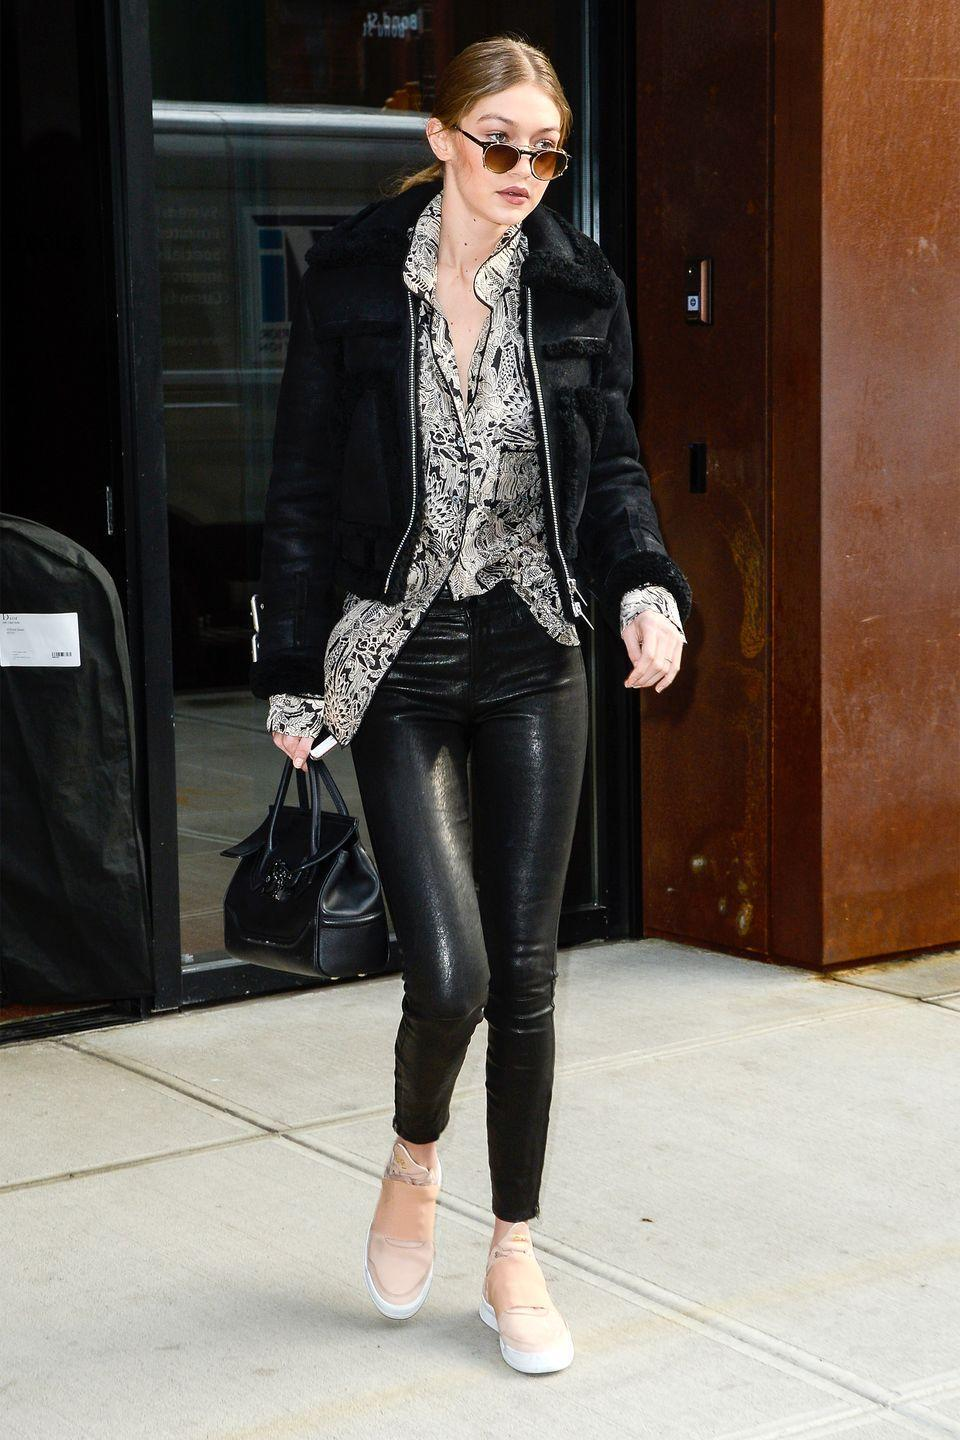 <p>In a black shearling jacket, printed blouse, leather pants, peach sneakers, Versace handbag and rounded sunglasses while out in New York. </p>